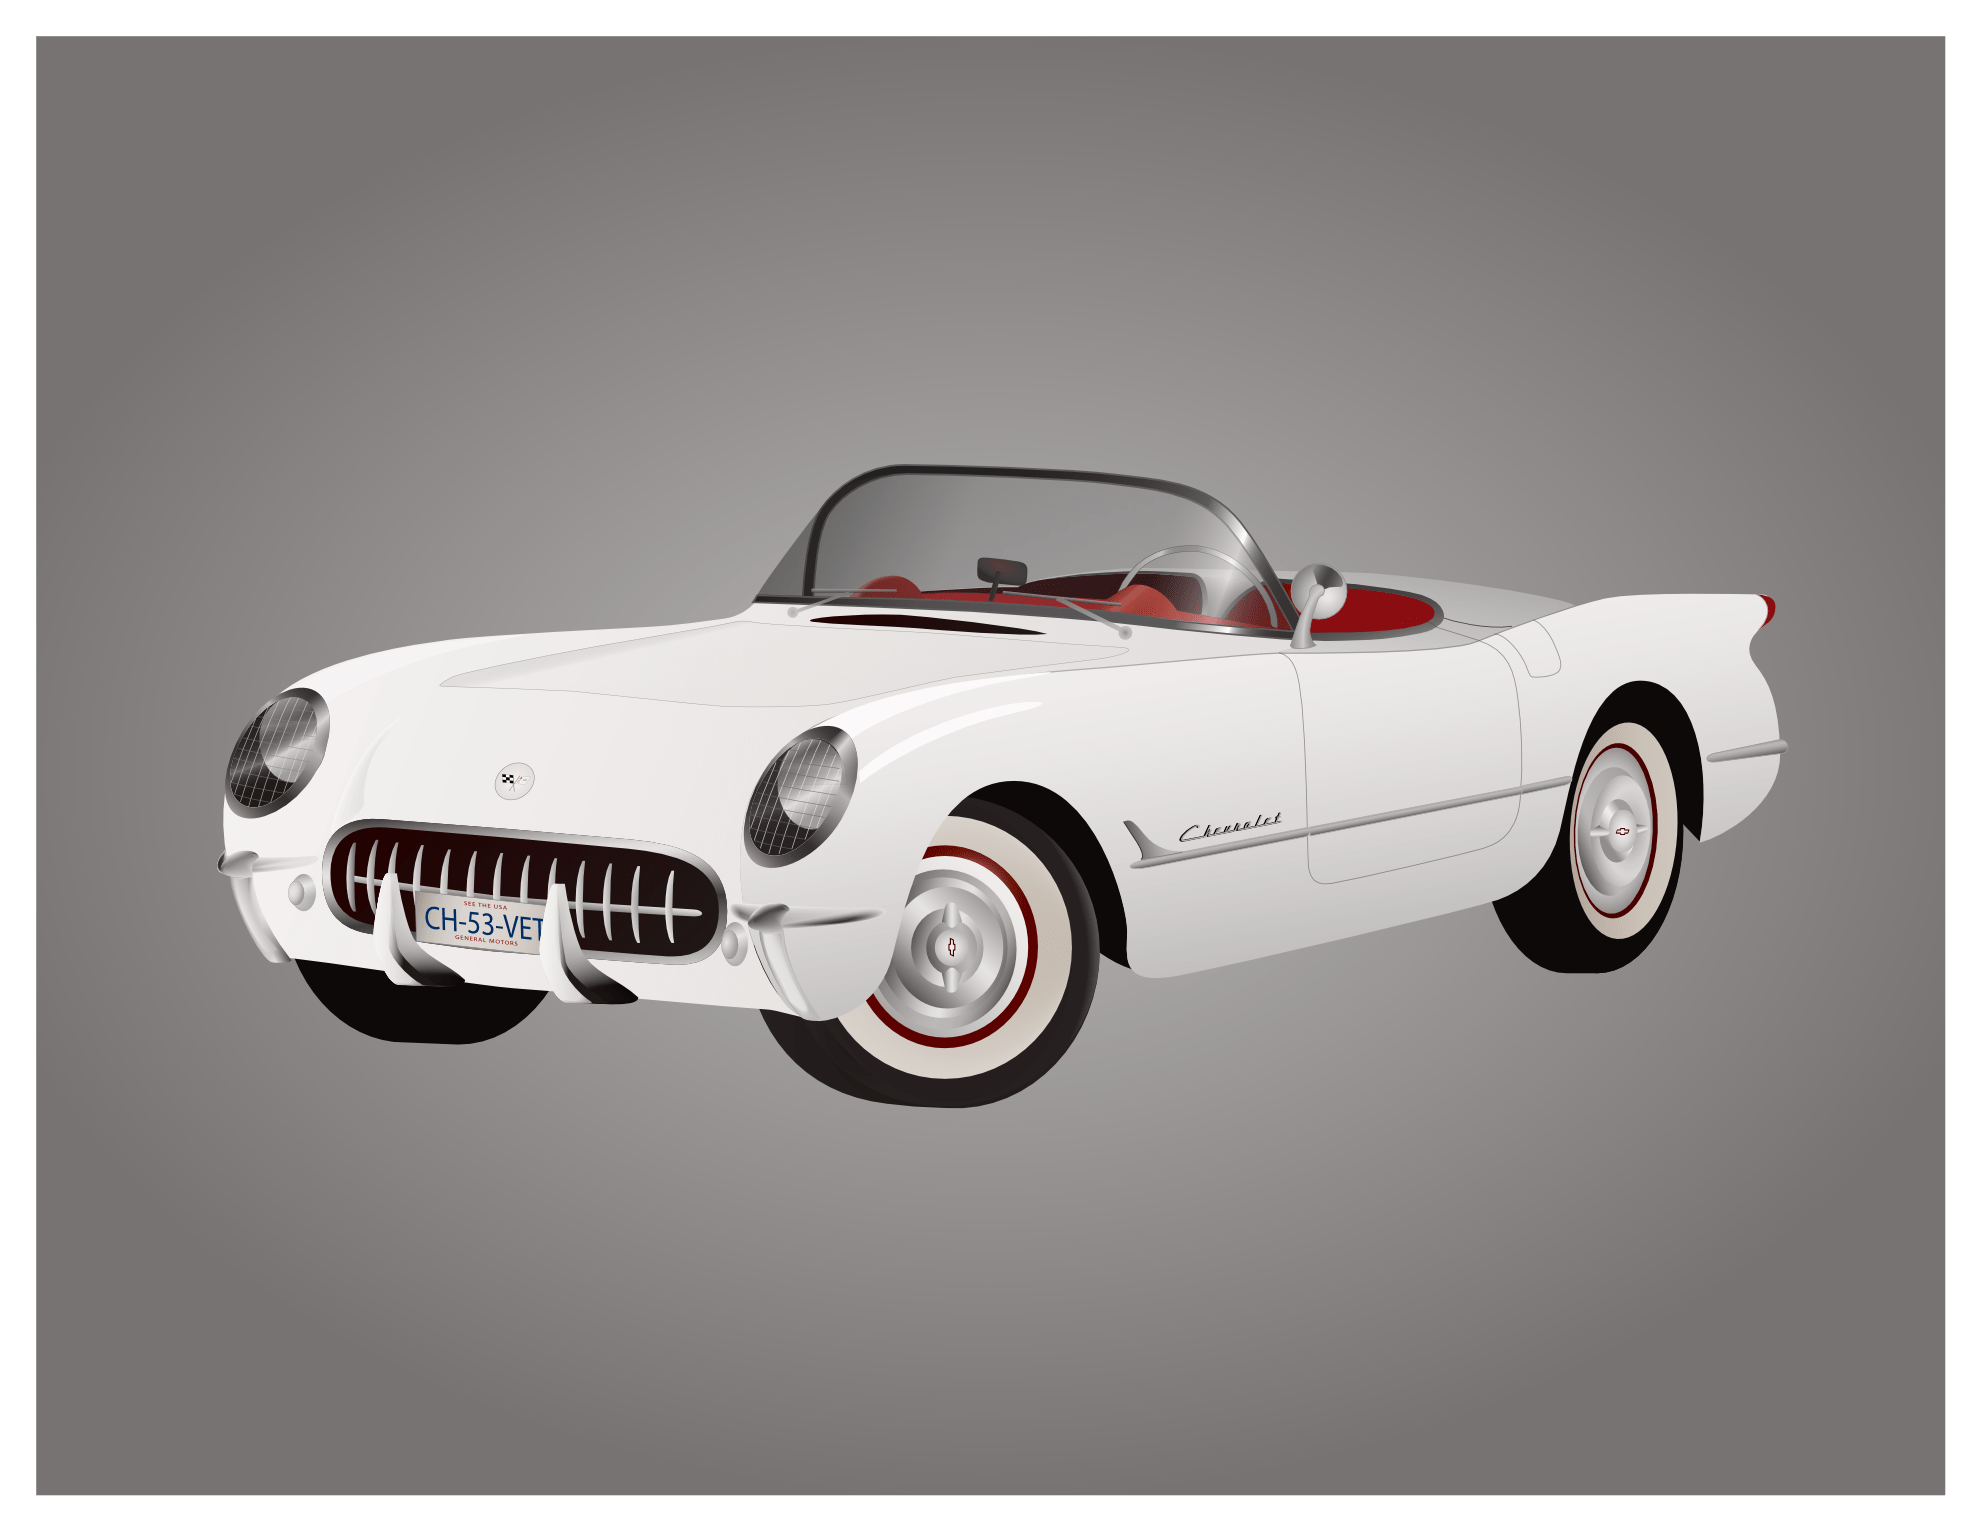 hight resolution of 1953 corvette clipart